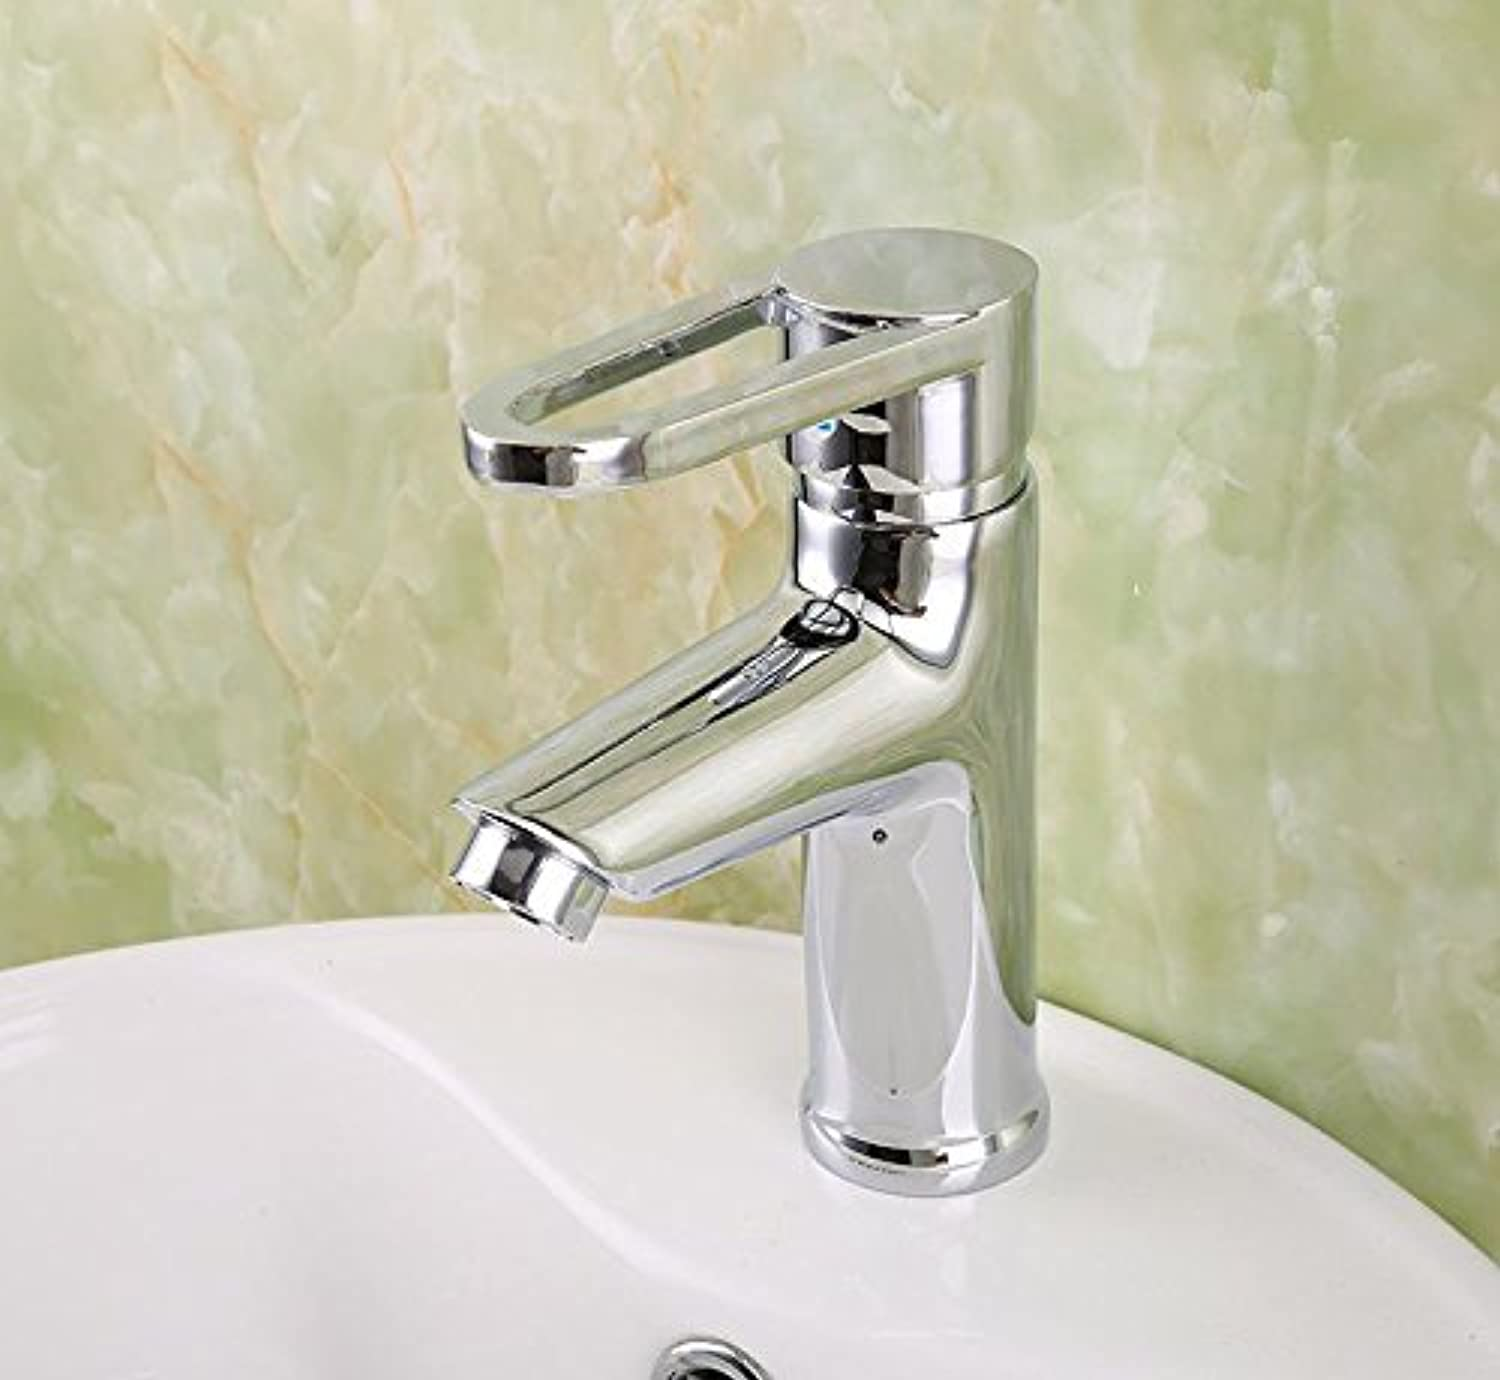 Bijjaladeva Bathroom Sink Vessel Faucet Basin Mixer Tap Hot and cold basin mixer single hole single handle bathroom vanity area with hand wash basin taps on Pearl bath-tub alloy fi